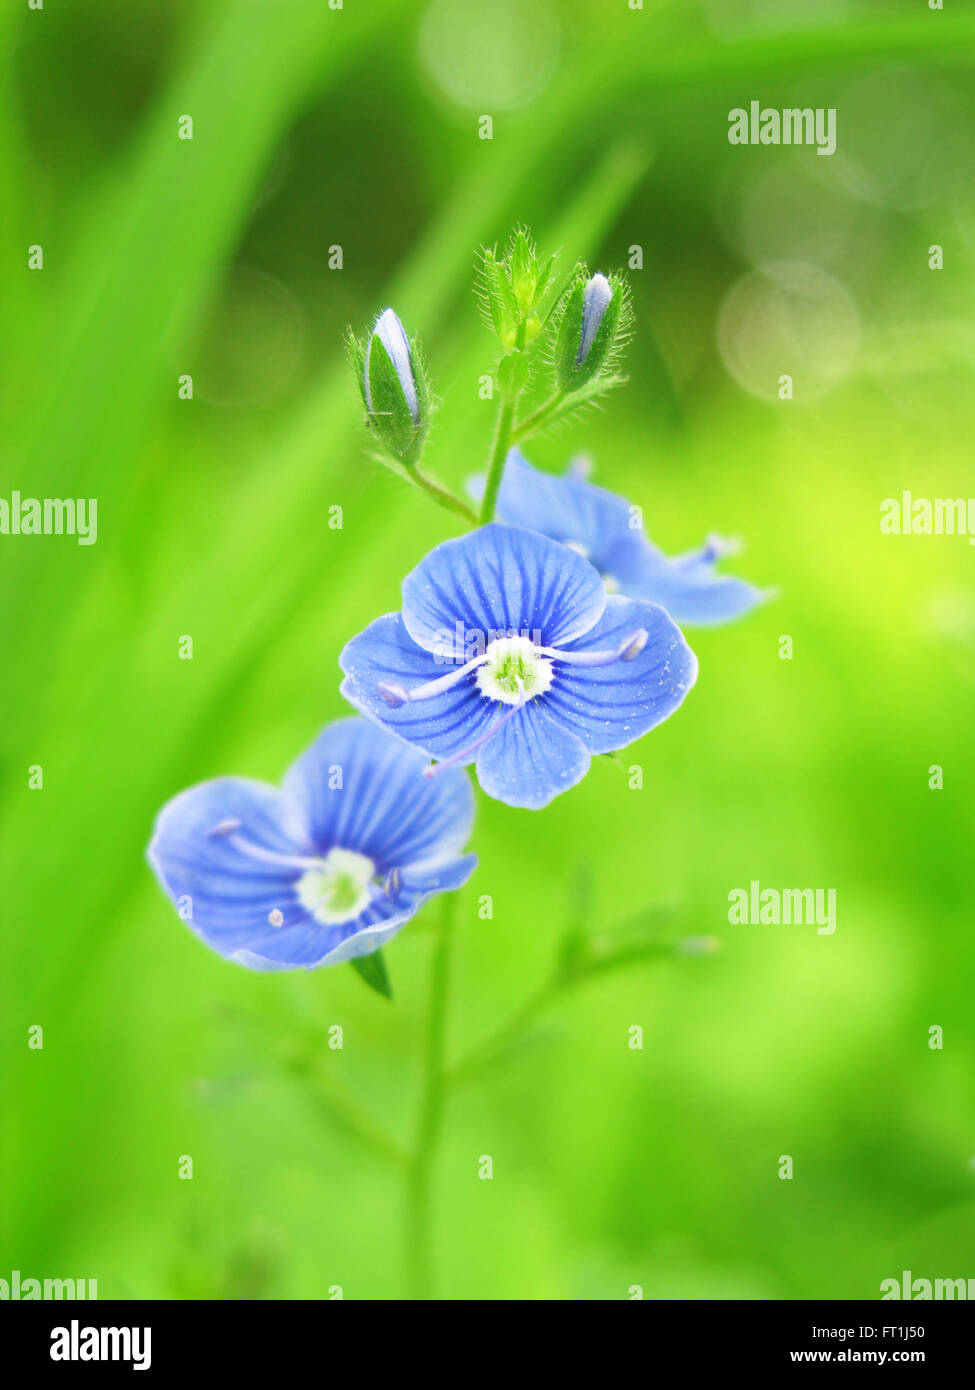 Germander speedwell against blurry background - Stock Image